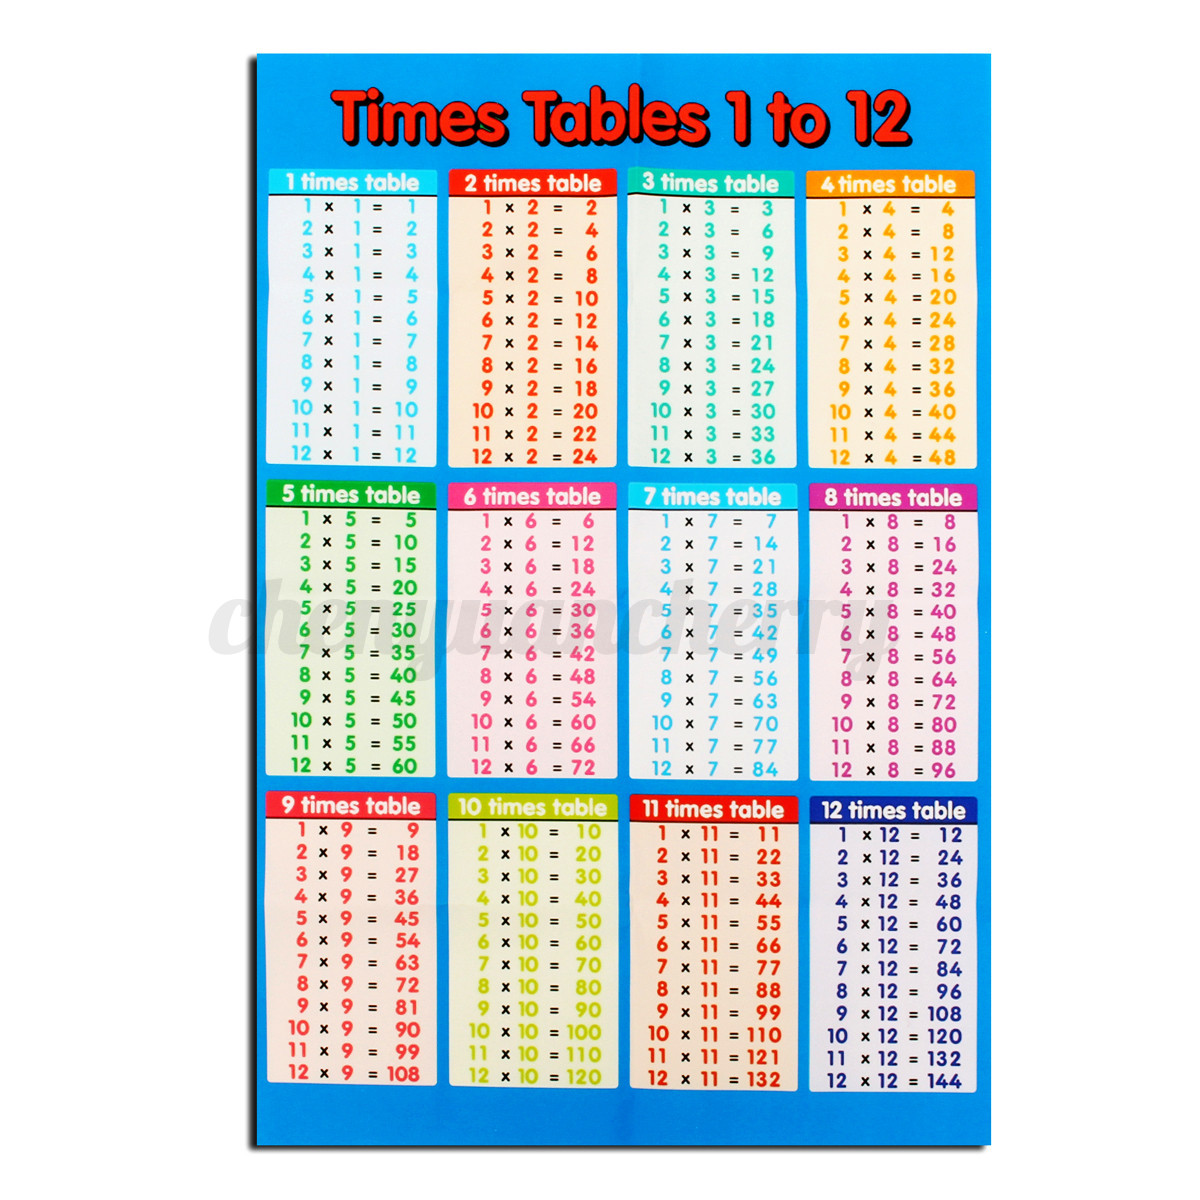 019 educational times tables maths children kids wall - Les table de multiplication de 1 a 12 ...